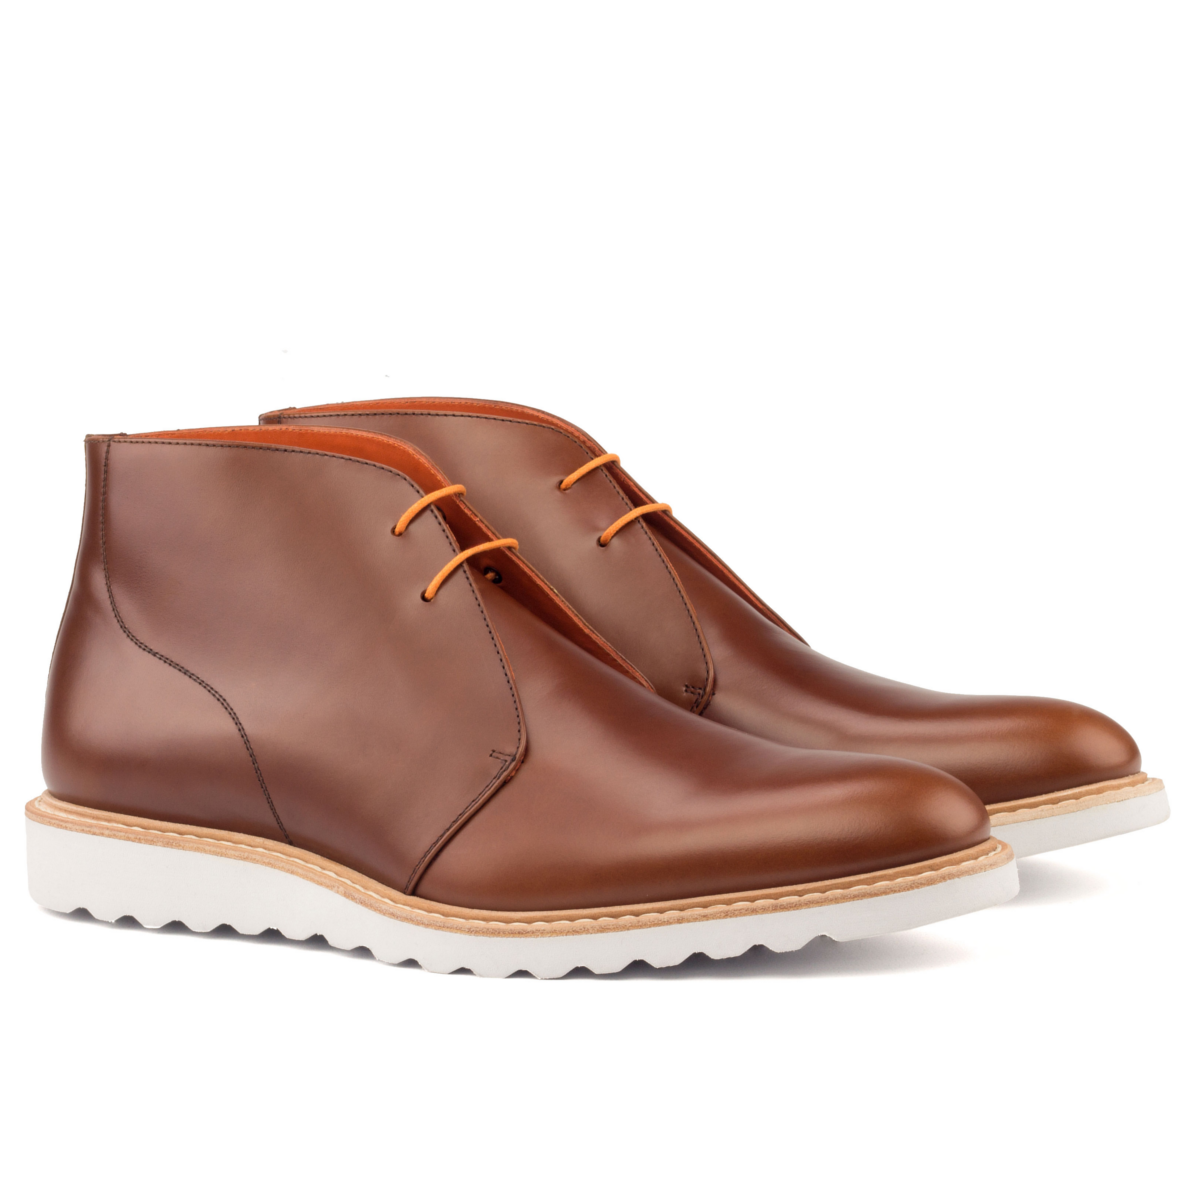 6932e69be6f94 Chukka boot and sport sole - Cambrillón Bespoke Leather